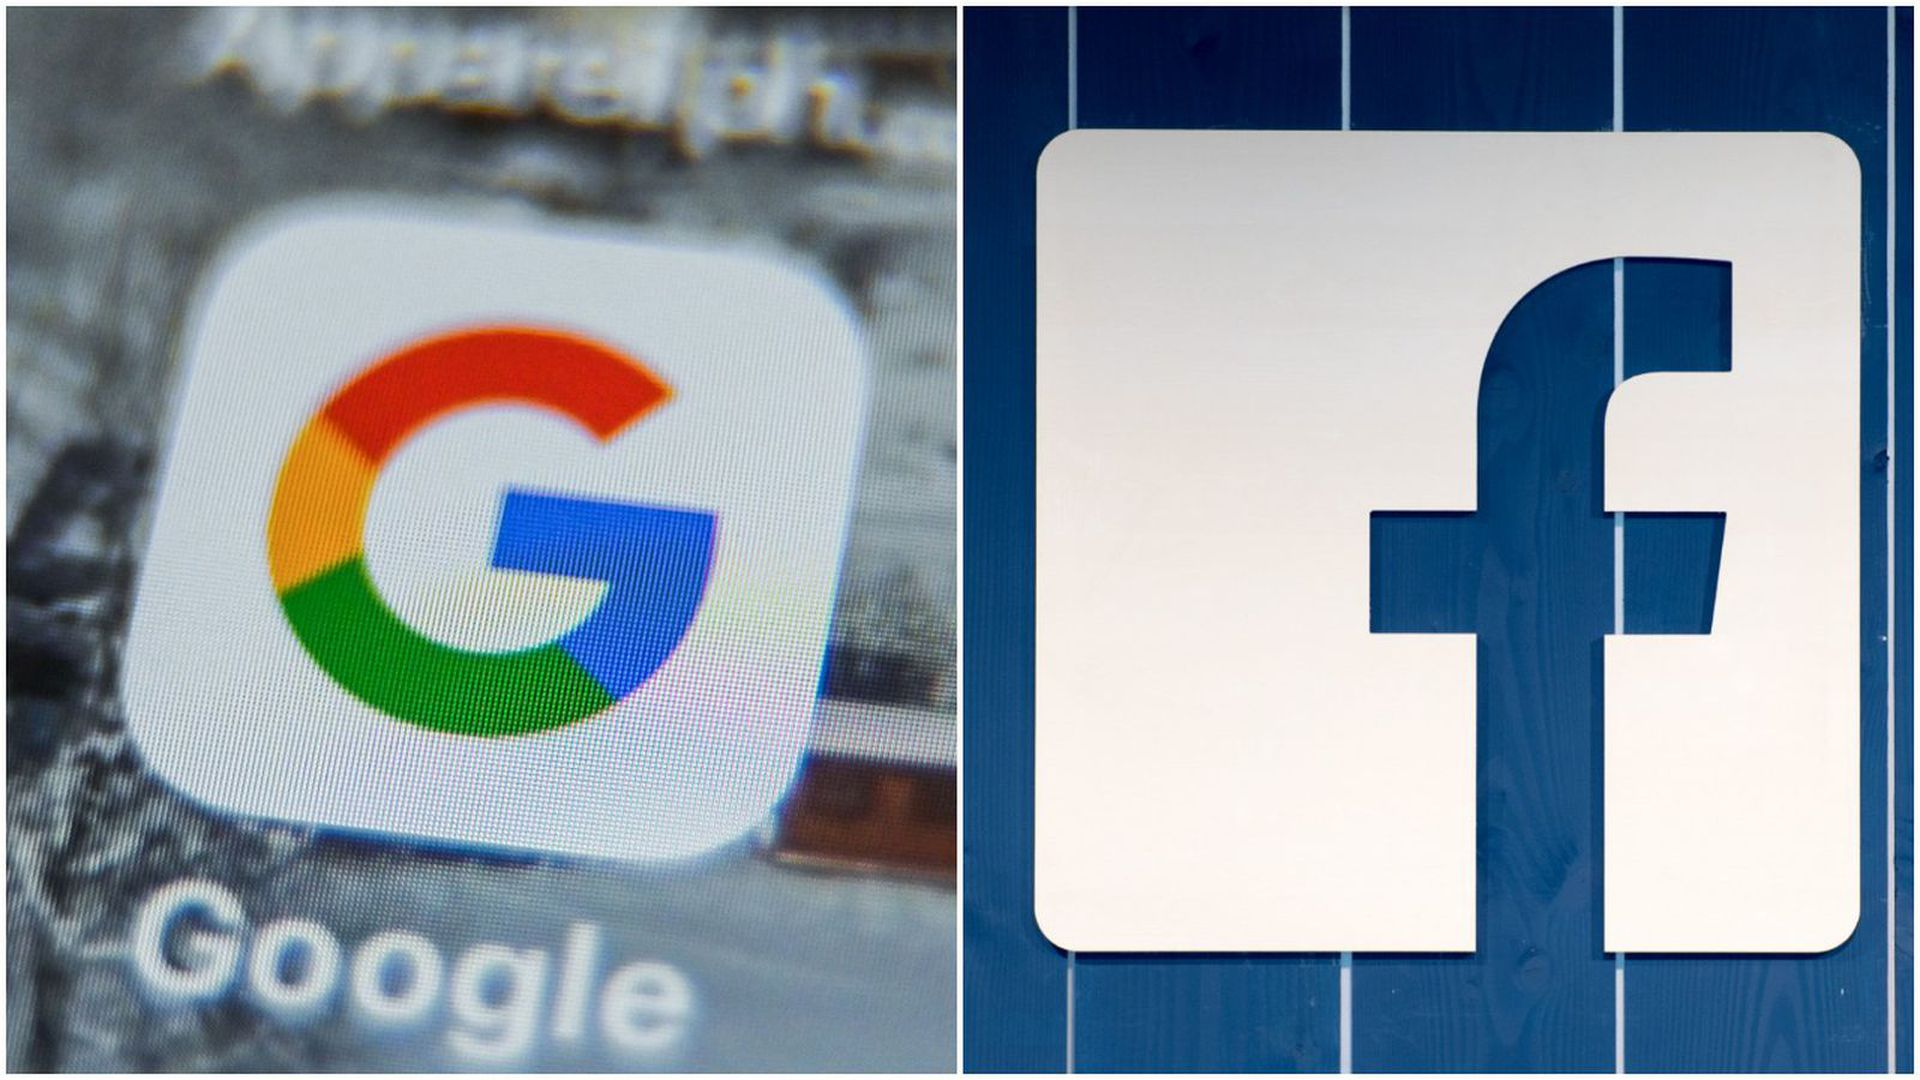 Photo of logos of Google and Facebook